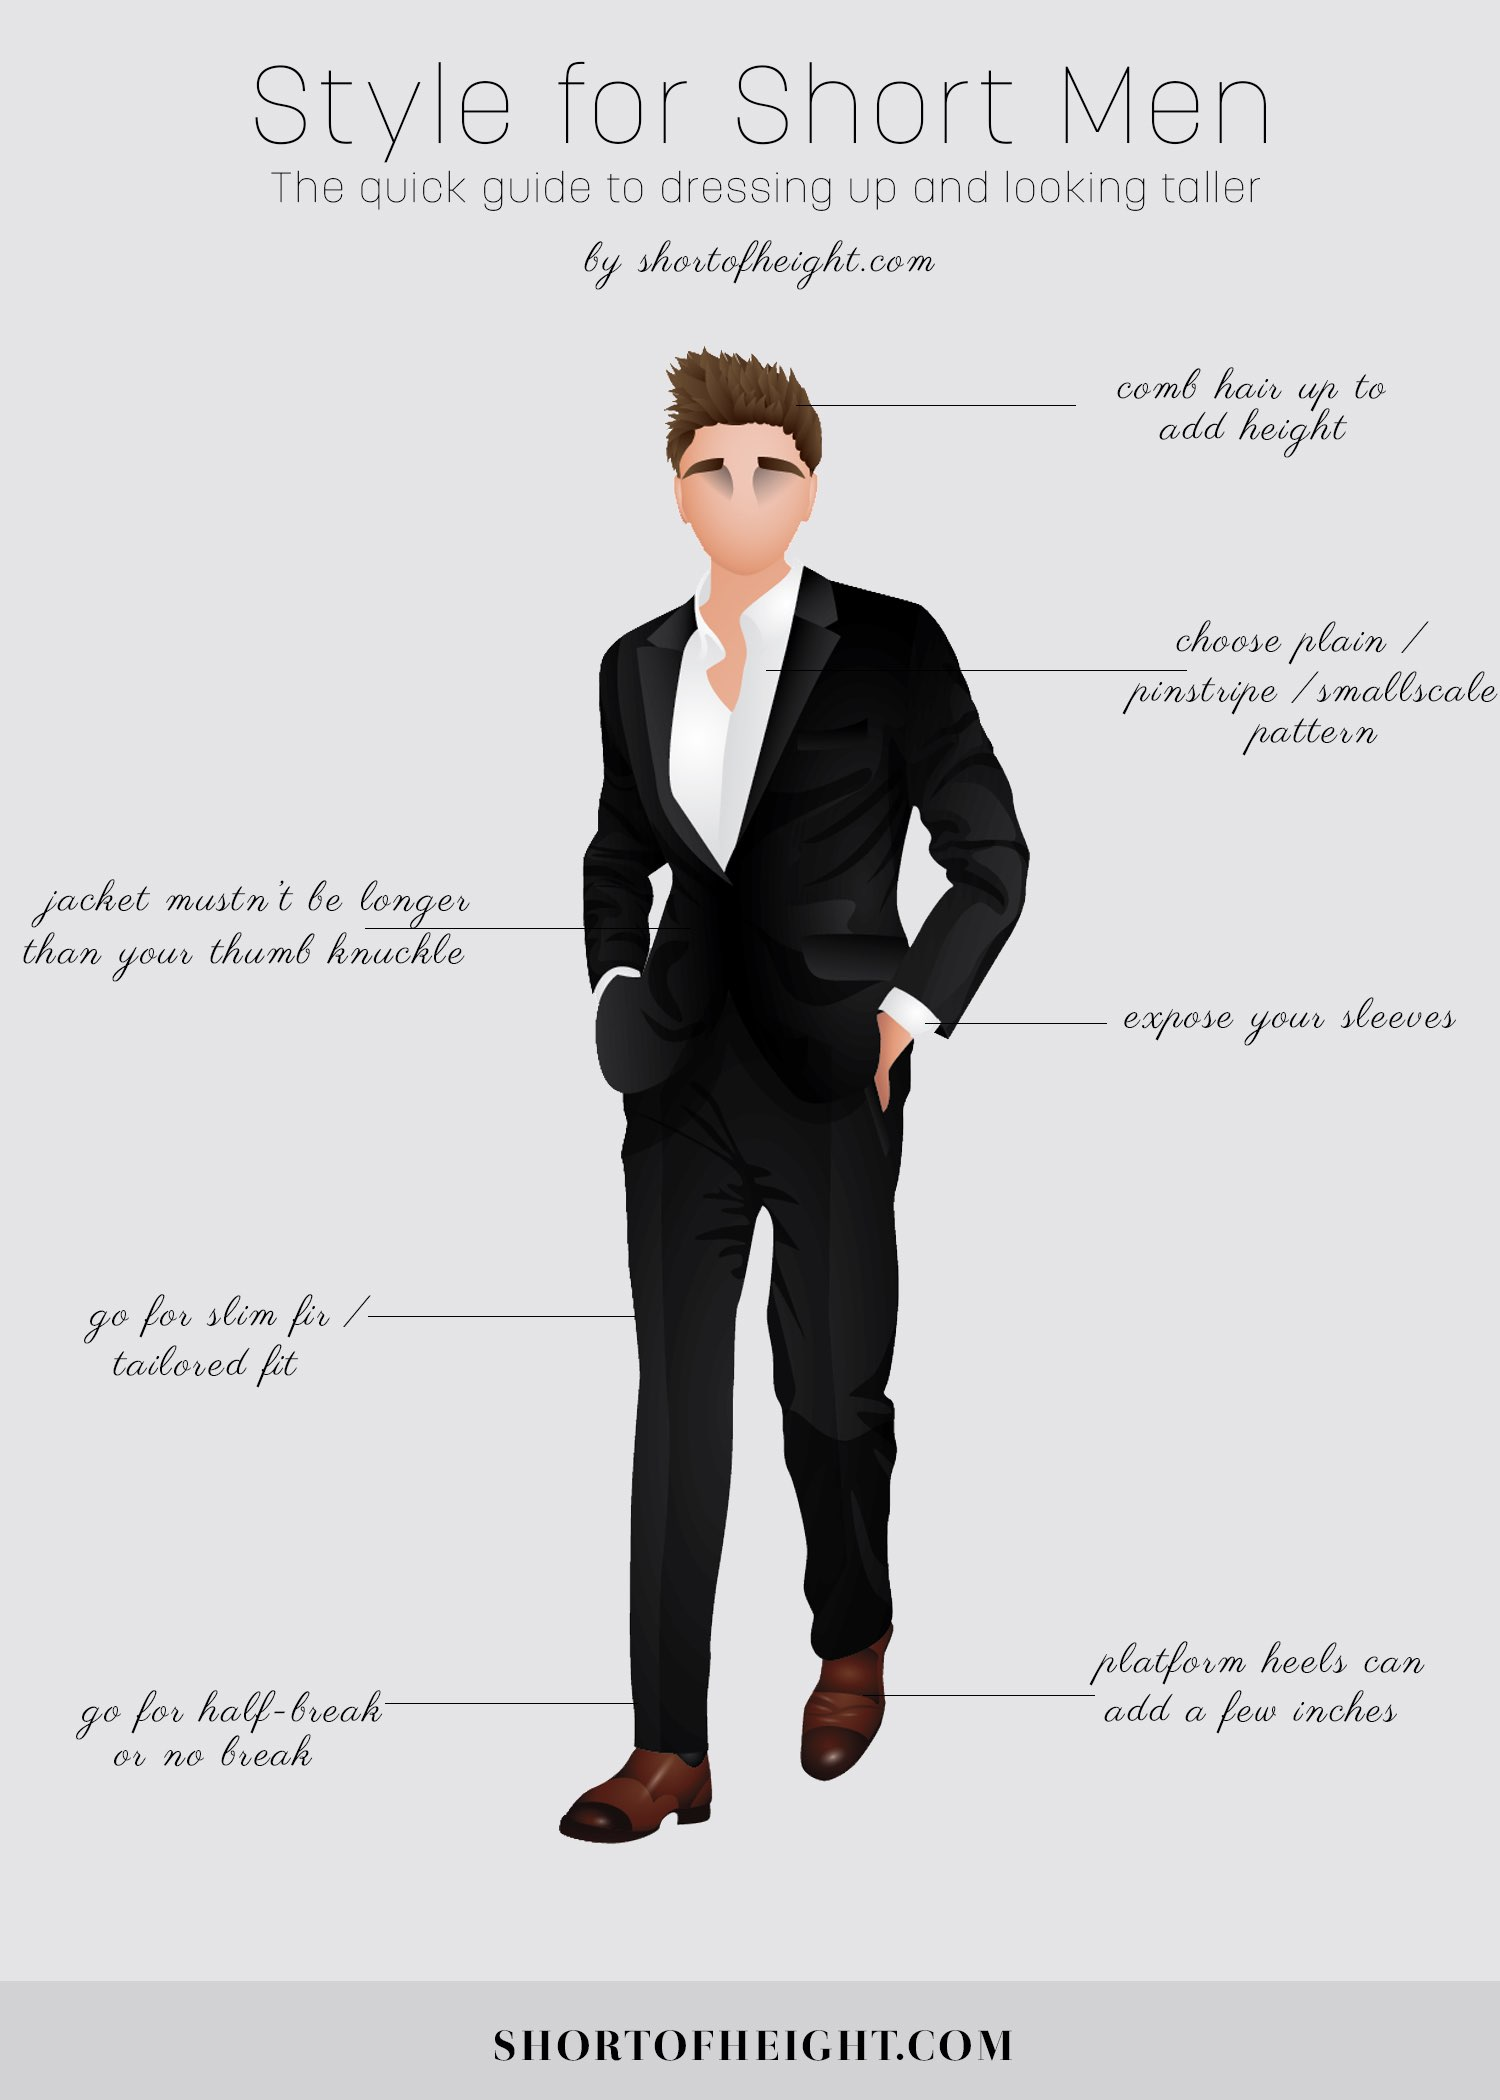 suits for short men infographic